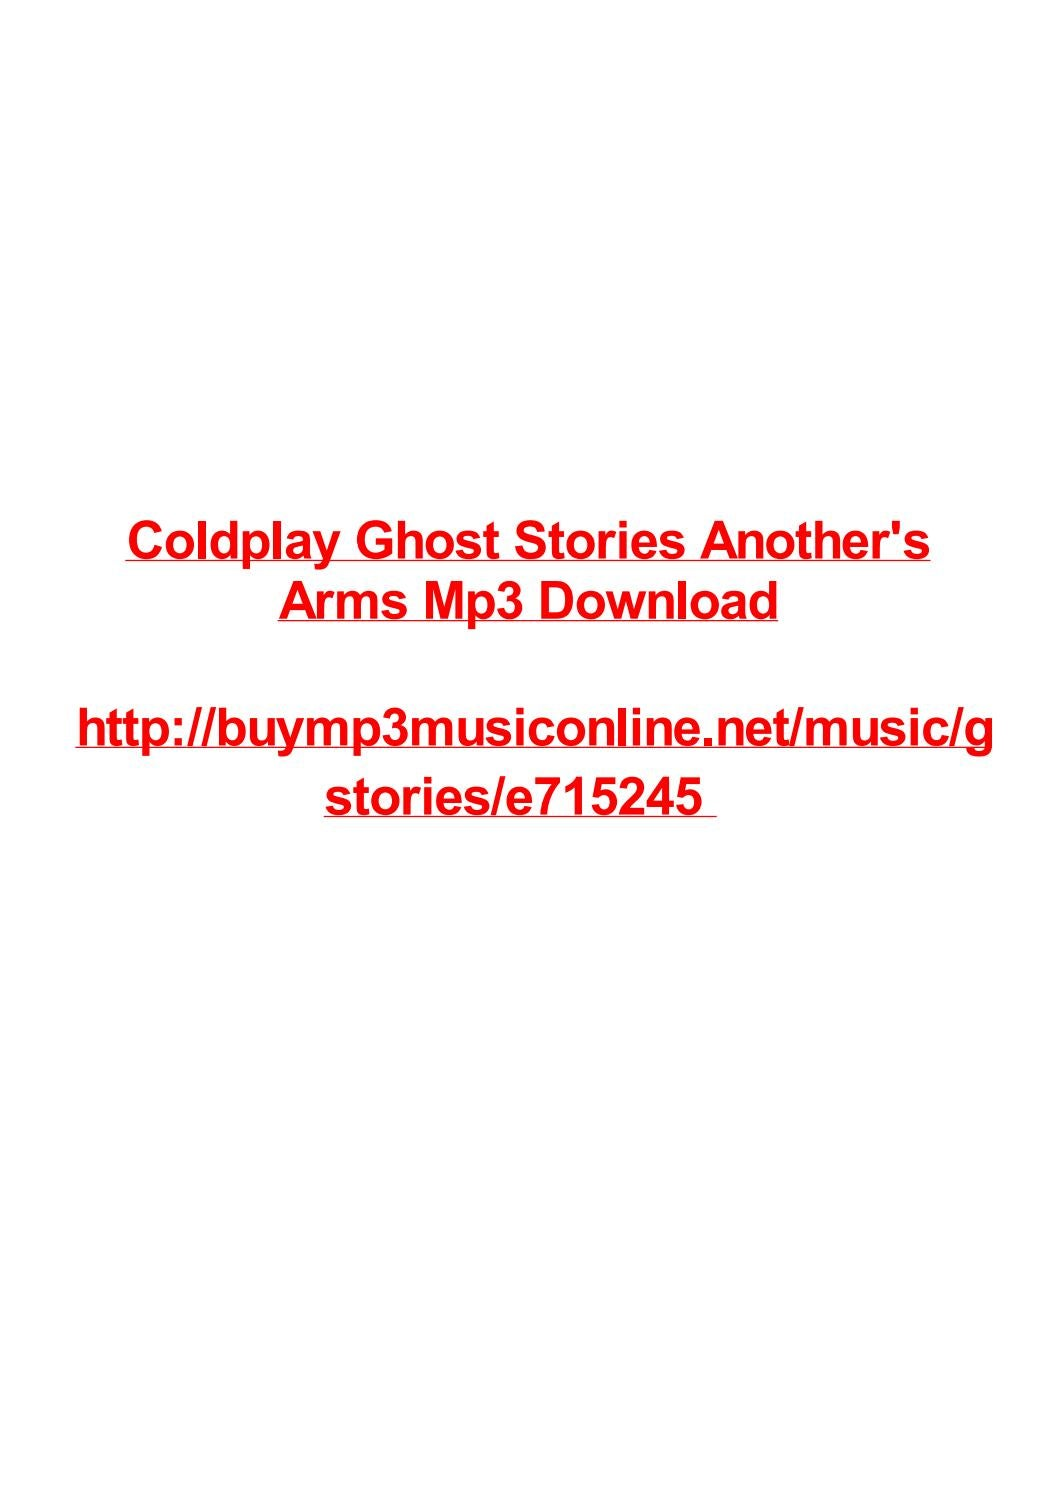 Coldplay ghost stories anothers arms mp3 download by Max Polansky